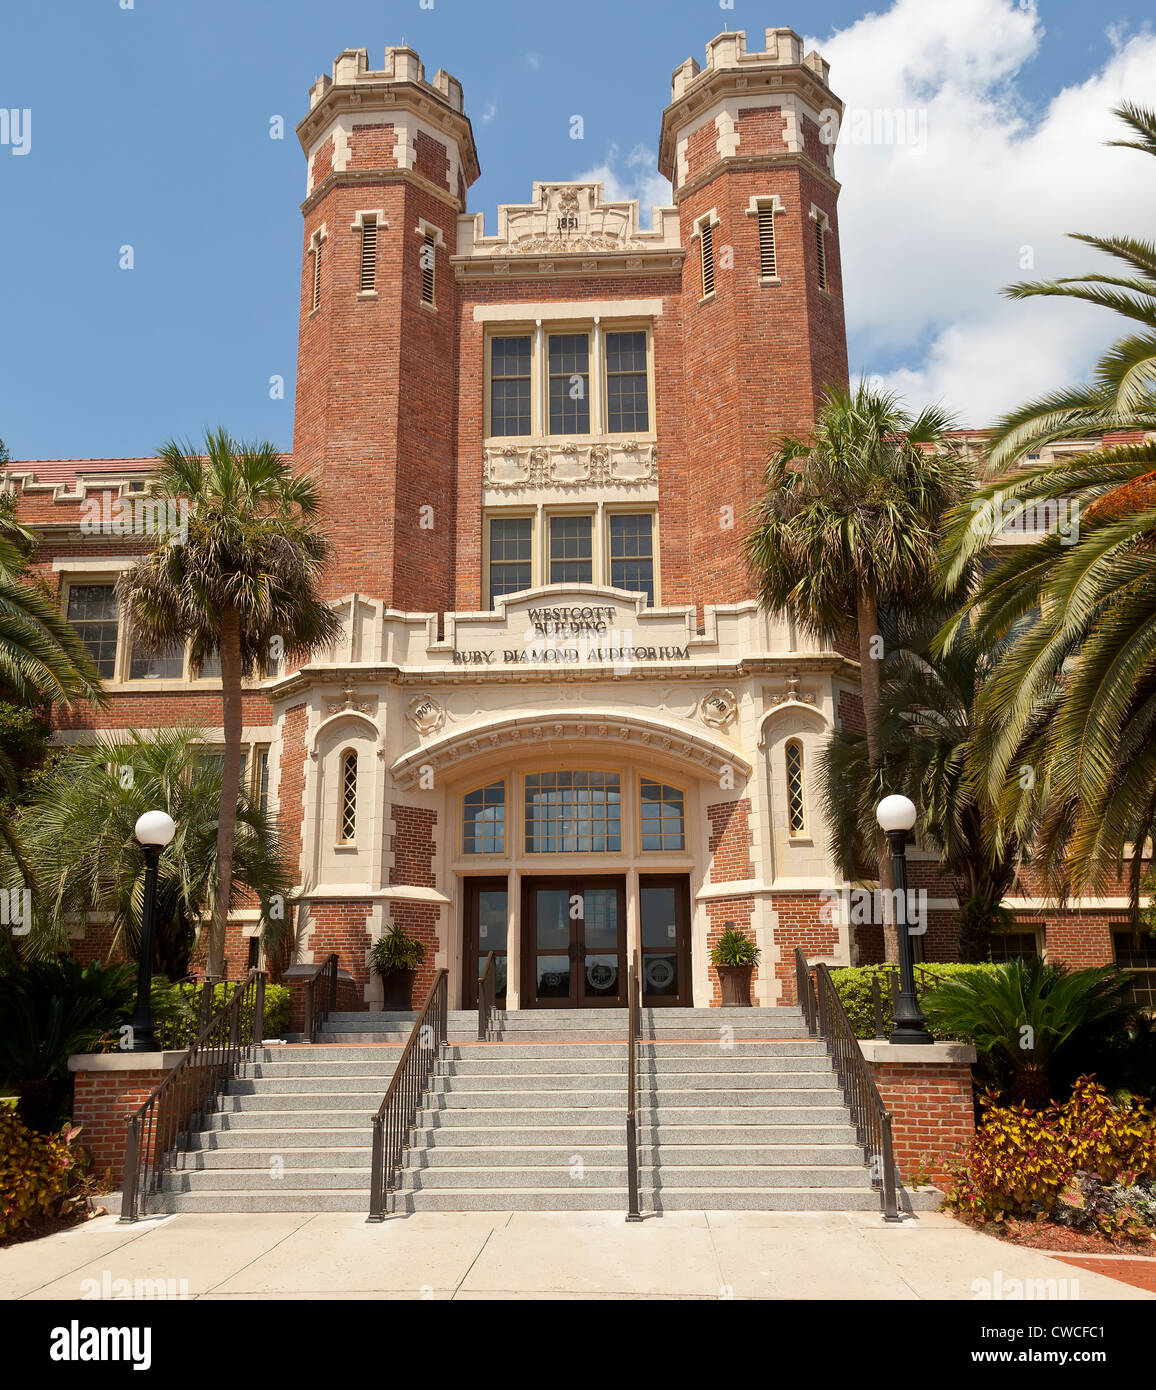 James D. Westcott Building at Florida State University, Tallahassee, Florida, USA - Stock Image